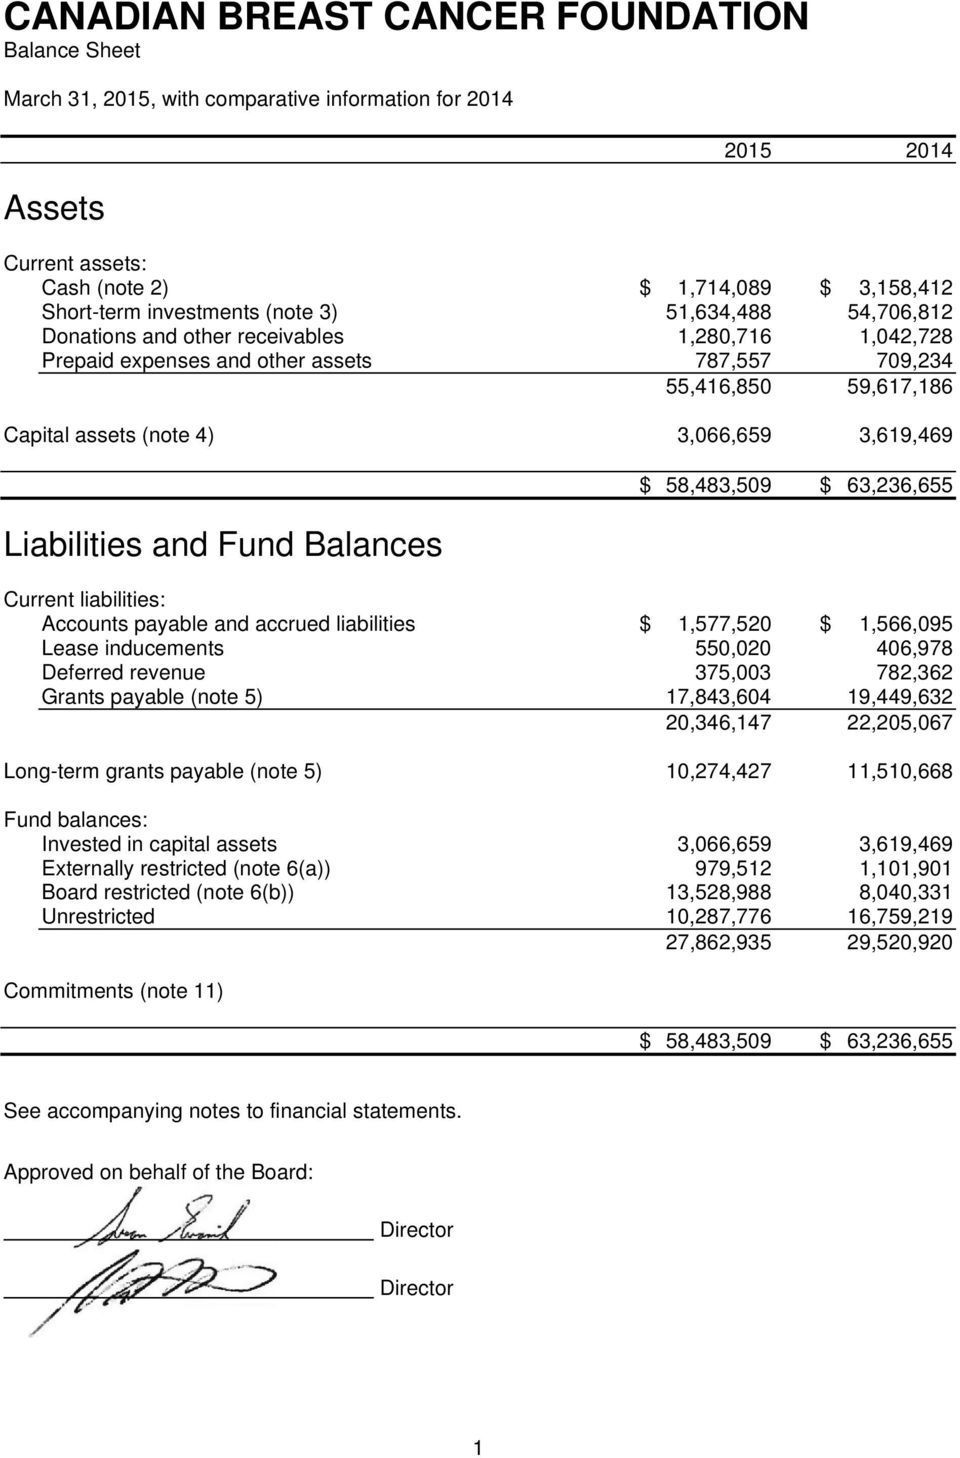 63,236,655 Current liabilities: Accounts payable and accrued liabilities $ 1,577,520 $ 1,566,095 Lease inducements 550,020 406,978 Deferred revenue 375,003 782,362 Grants payable (note 5) 17,843,604